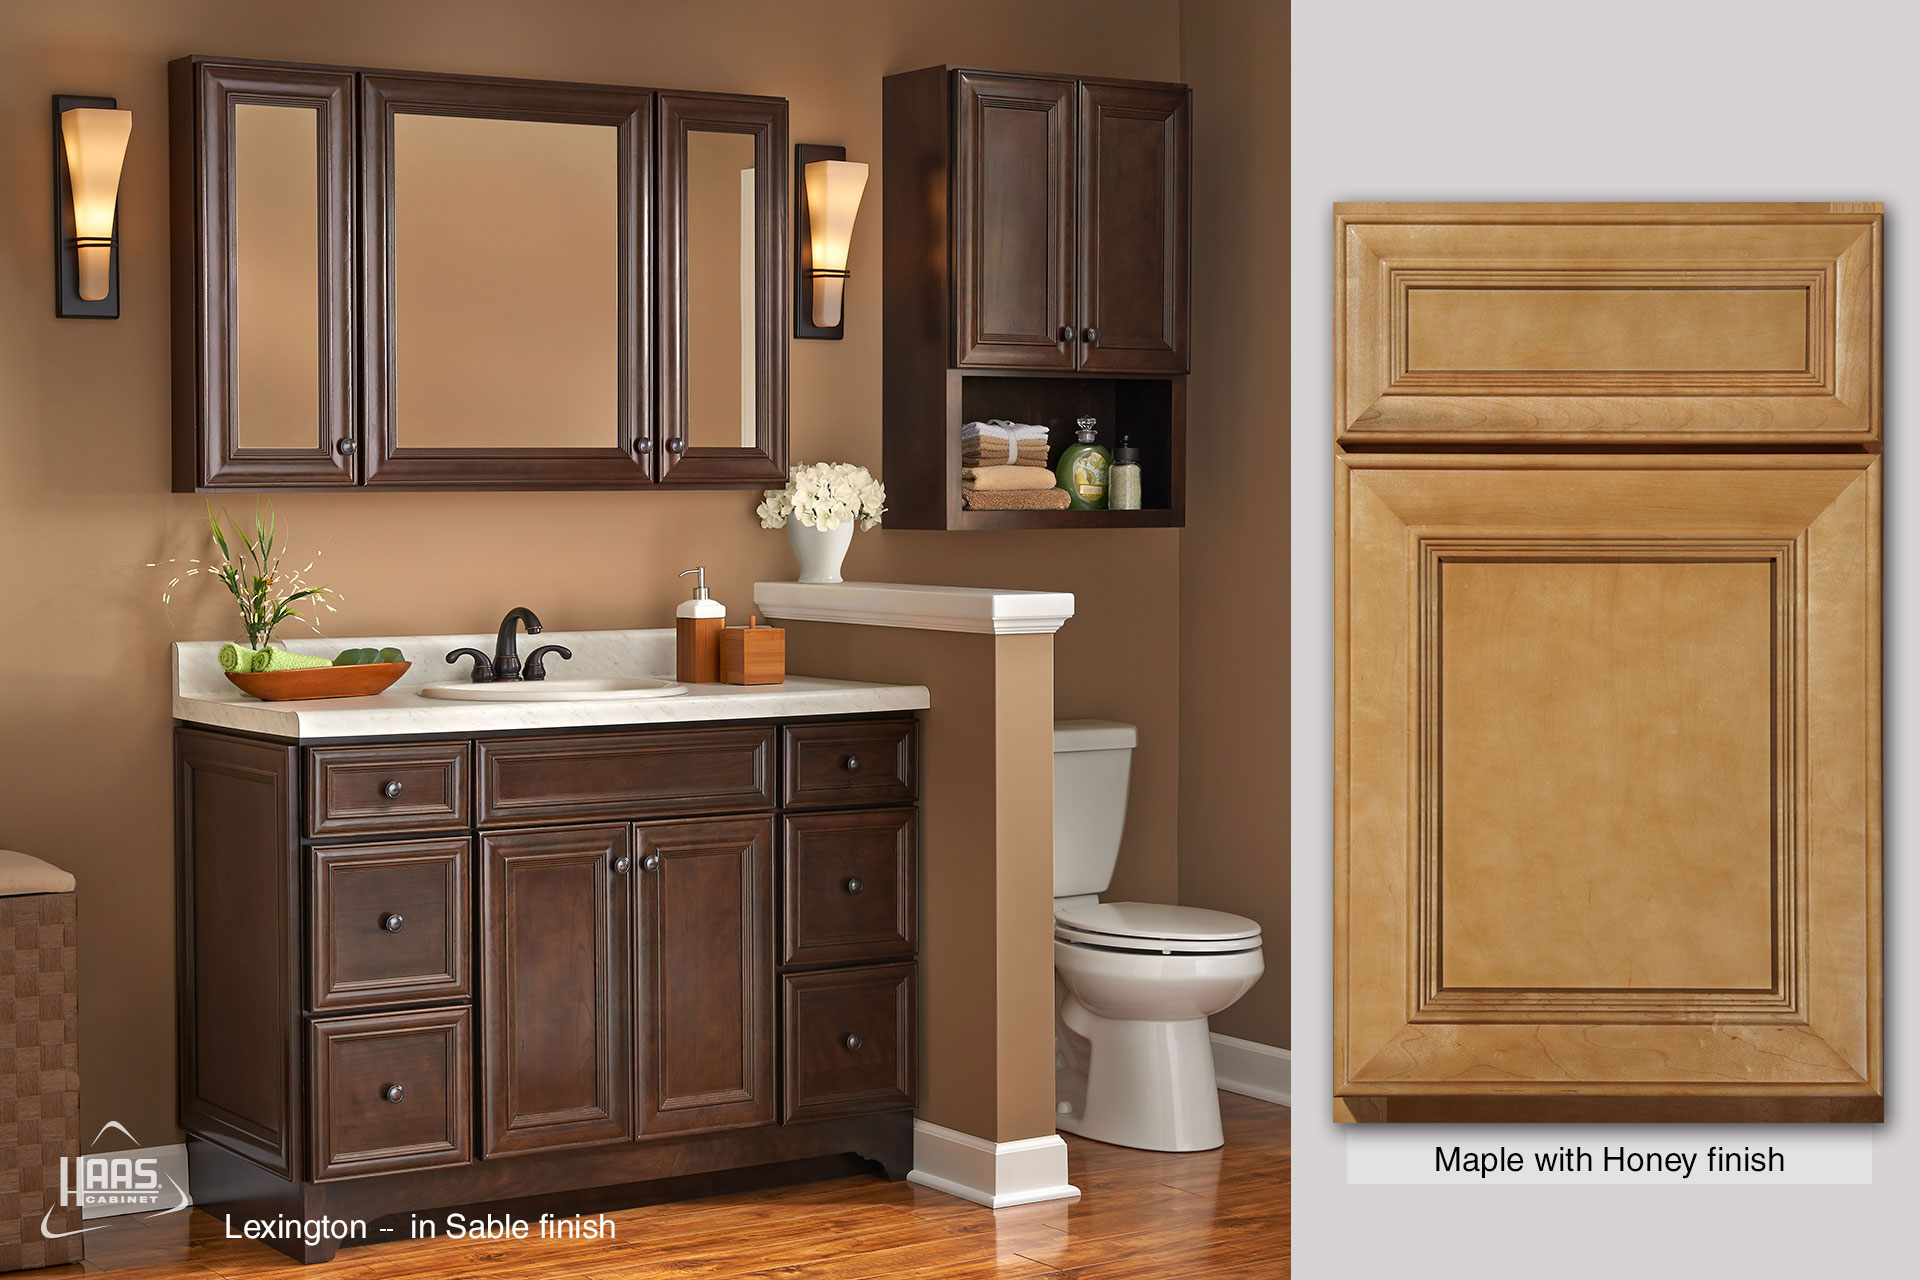 Lexington Haas Cabinet Vanity